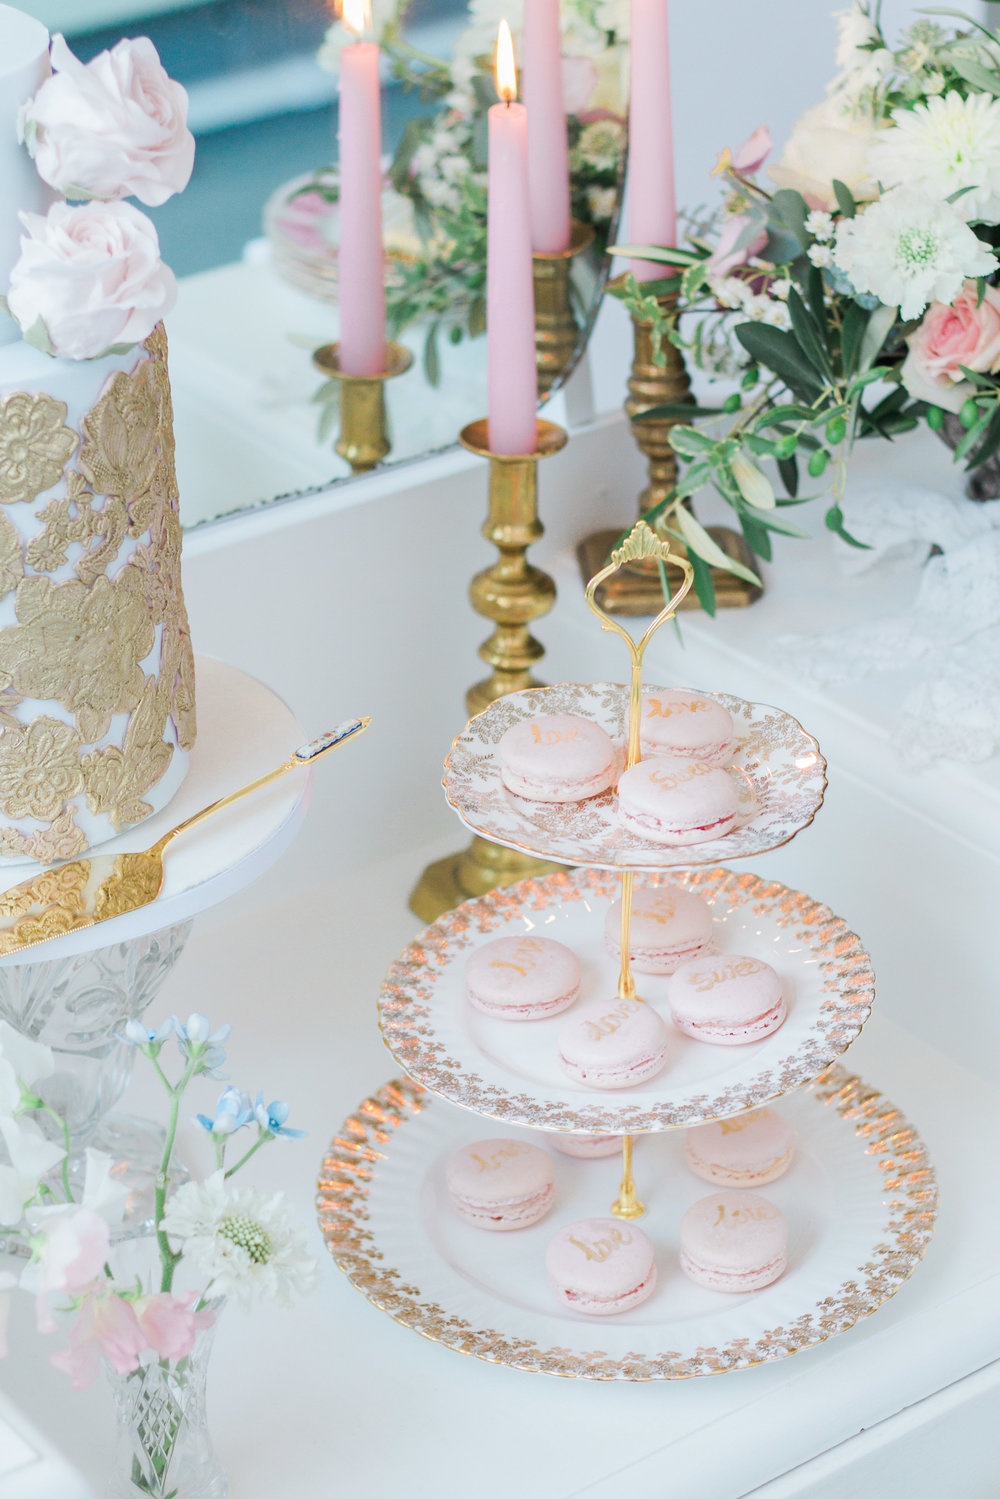 Vintage Amy Wedding Styling-Vintage Luxe Wedding Reception London-Vintage Dressing Table Dessert Table